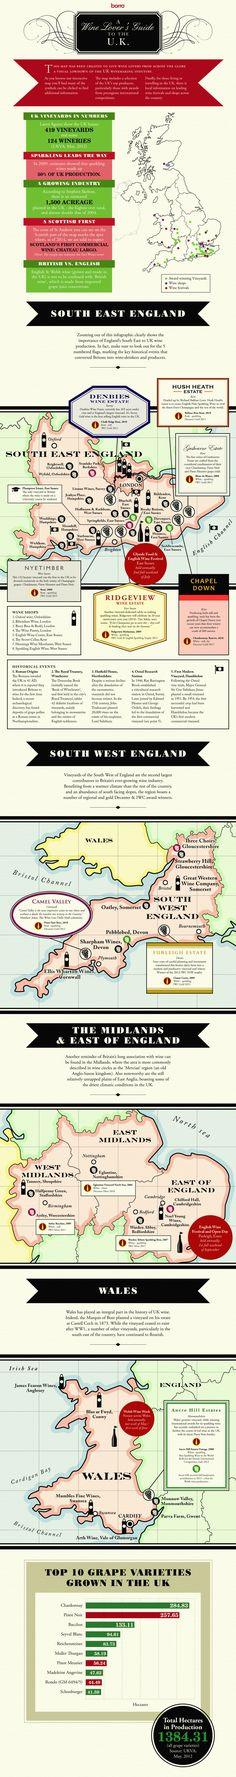 The #wine culture of the #UK from the many vineyards to wineries, festivals and shops across the country - http://finedininglovers.com/blog/food-drinks/english-wine/